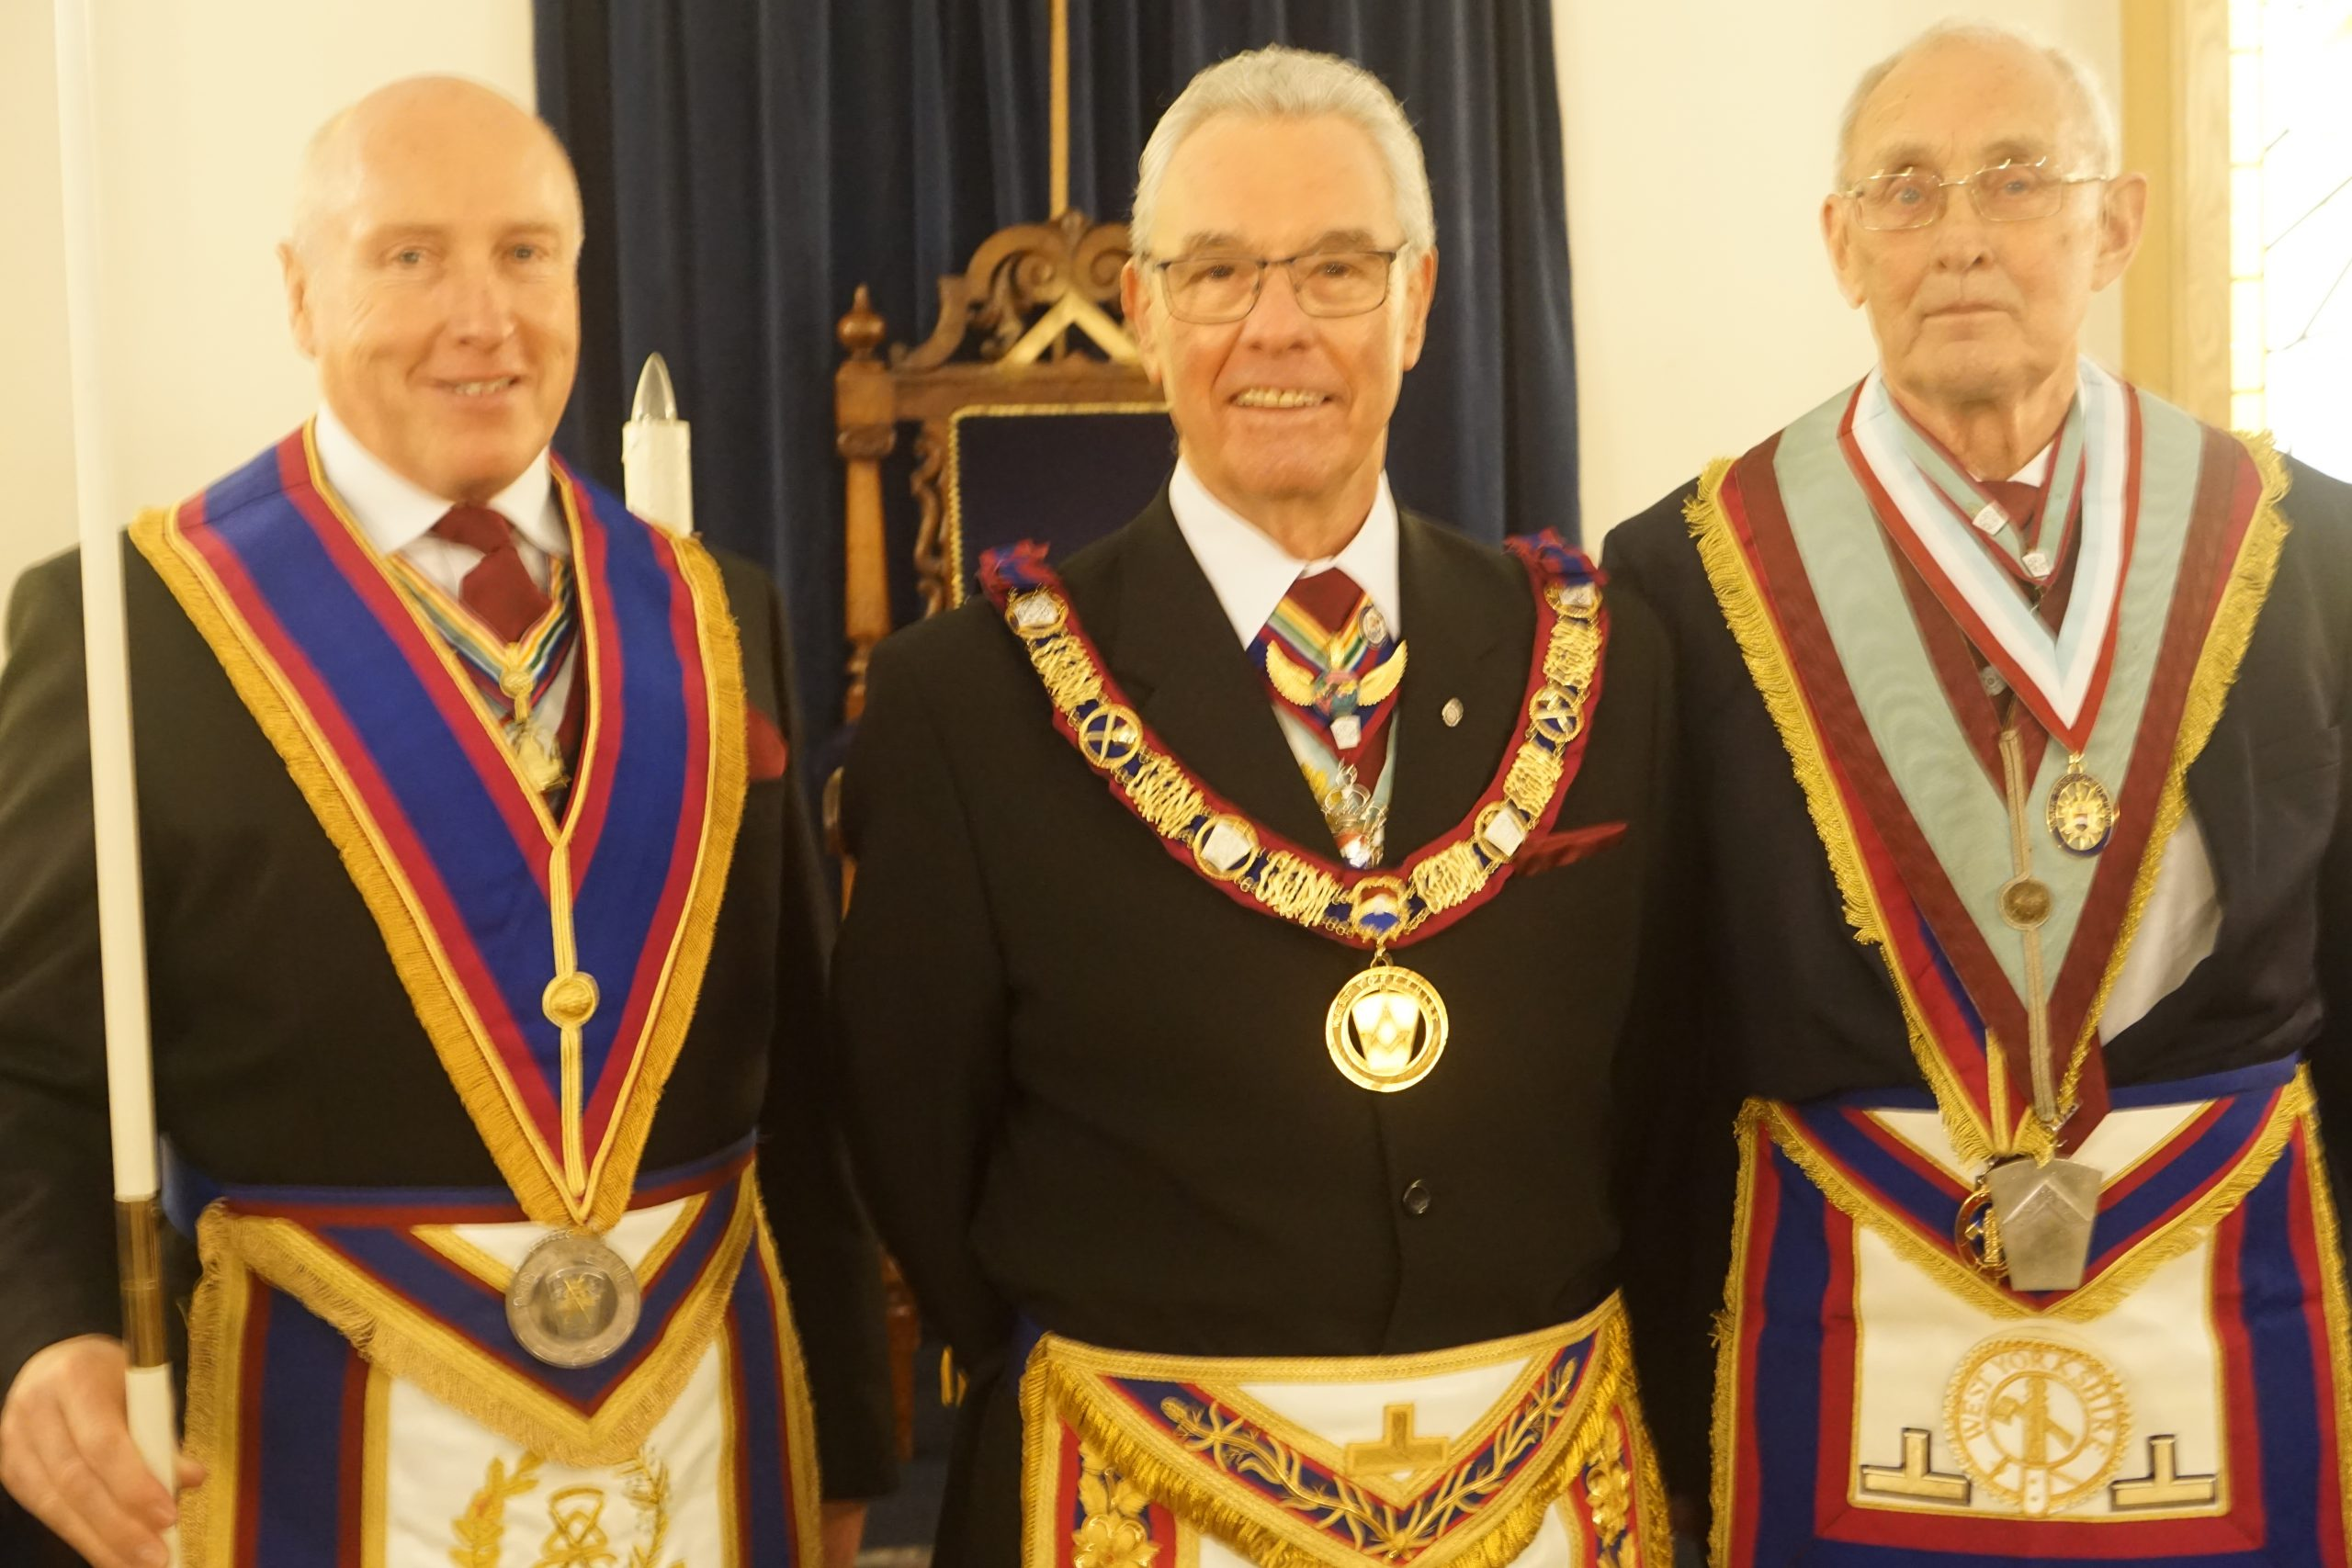 A double header at Legiolium Mark Lodge No. 457, Wednesday 22nd, Jan, 2020